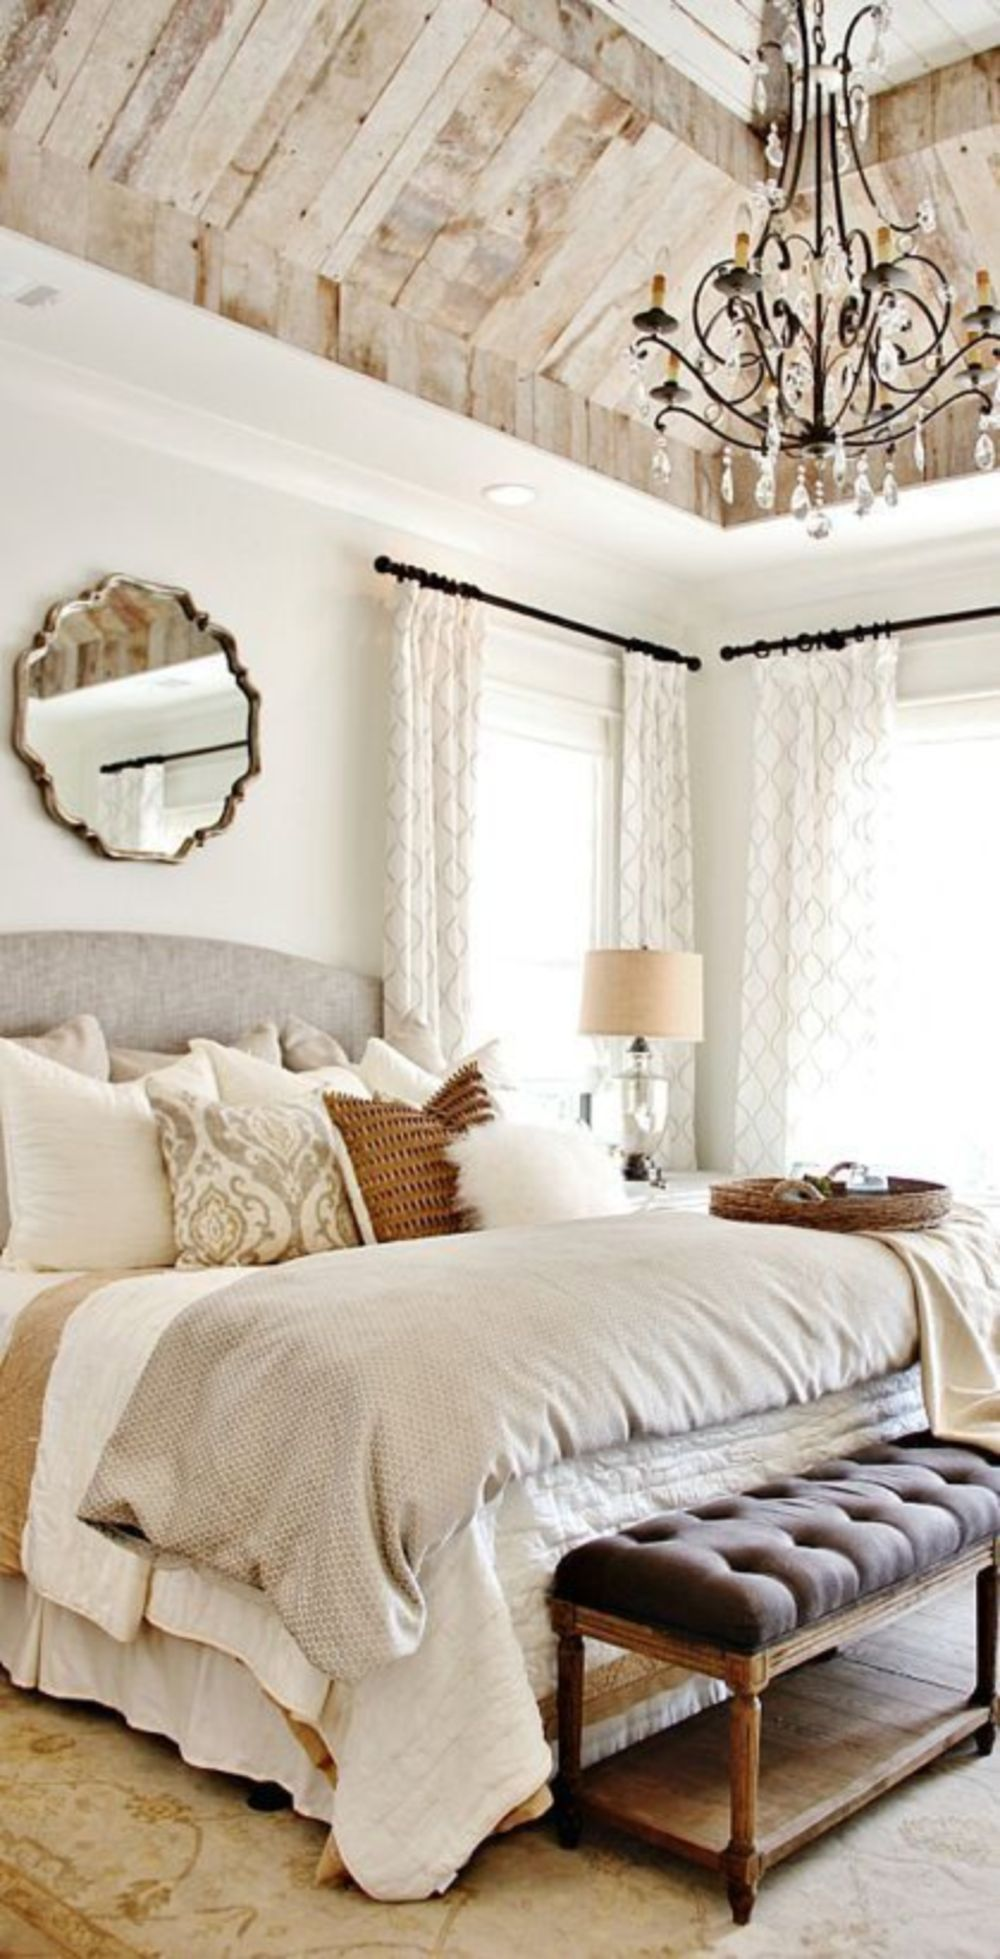 Create The Home Of Your Dreams With This Handy Home Improvement ...